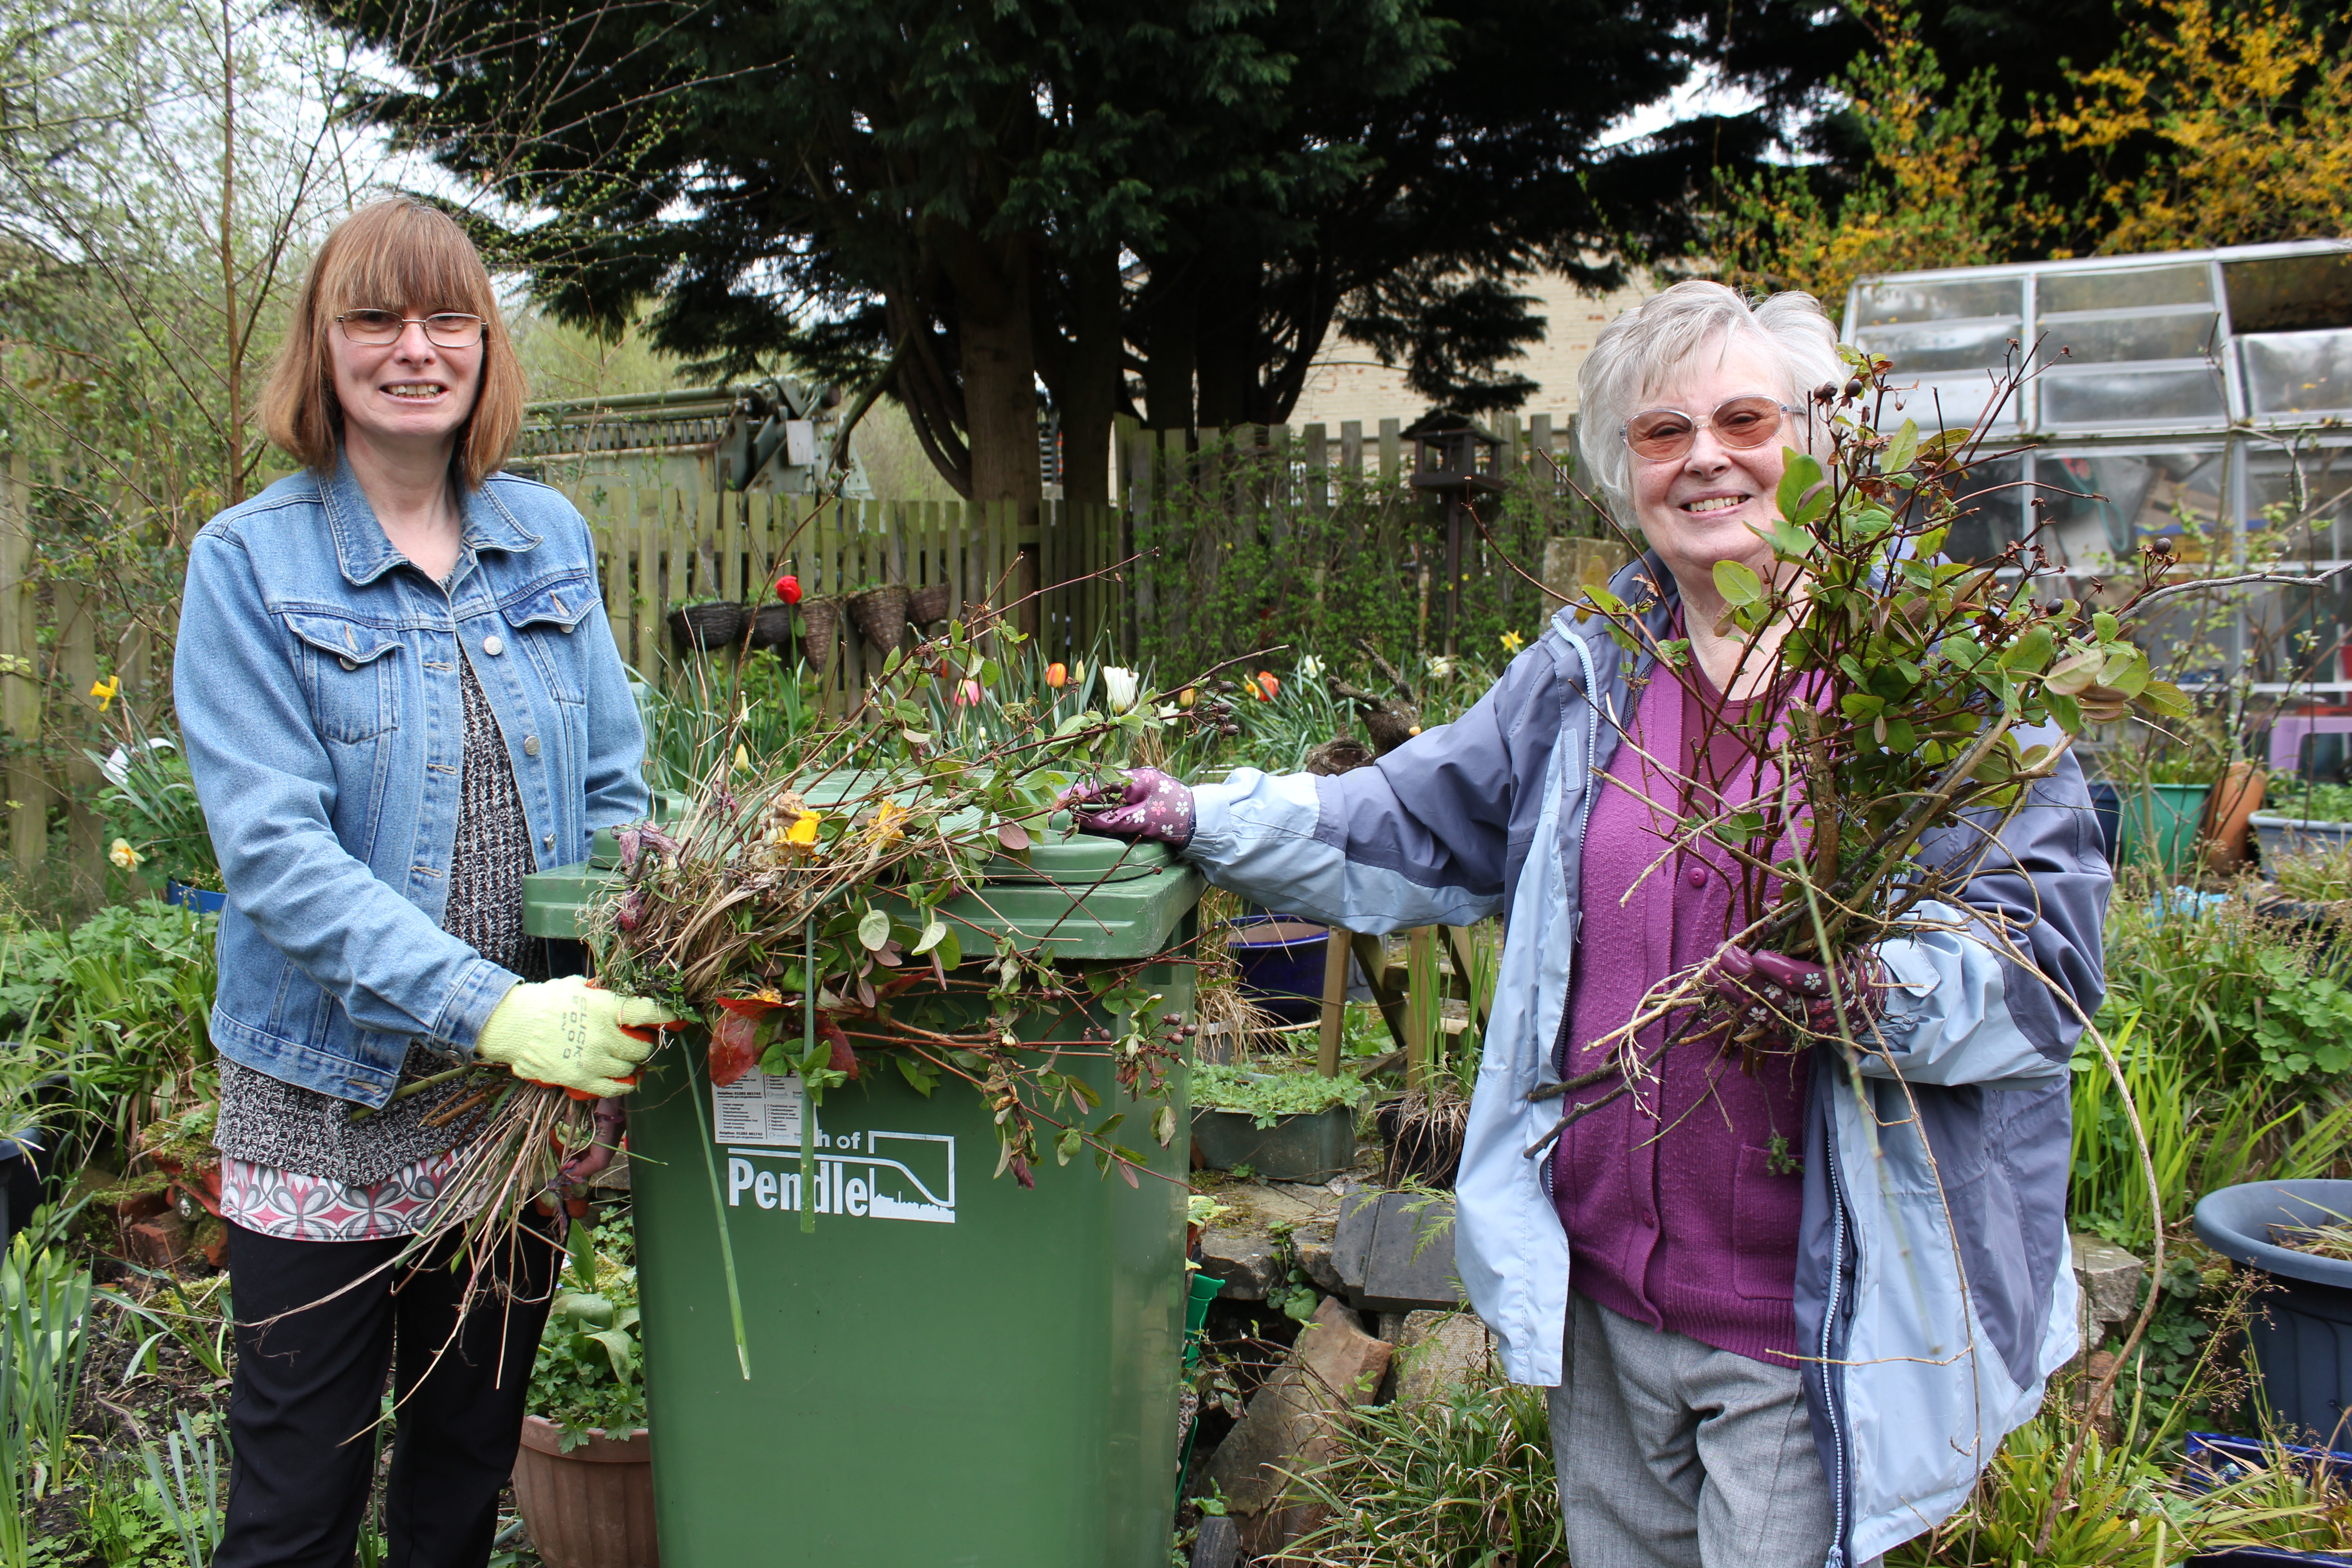 Gardeners urged to be part of garden waste scheme